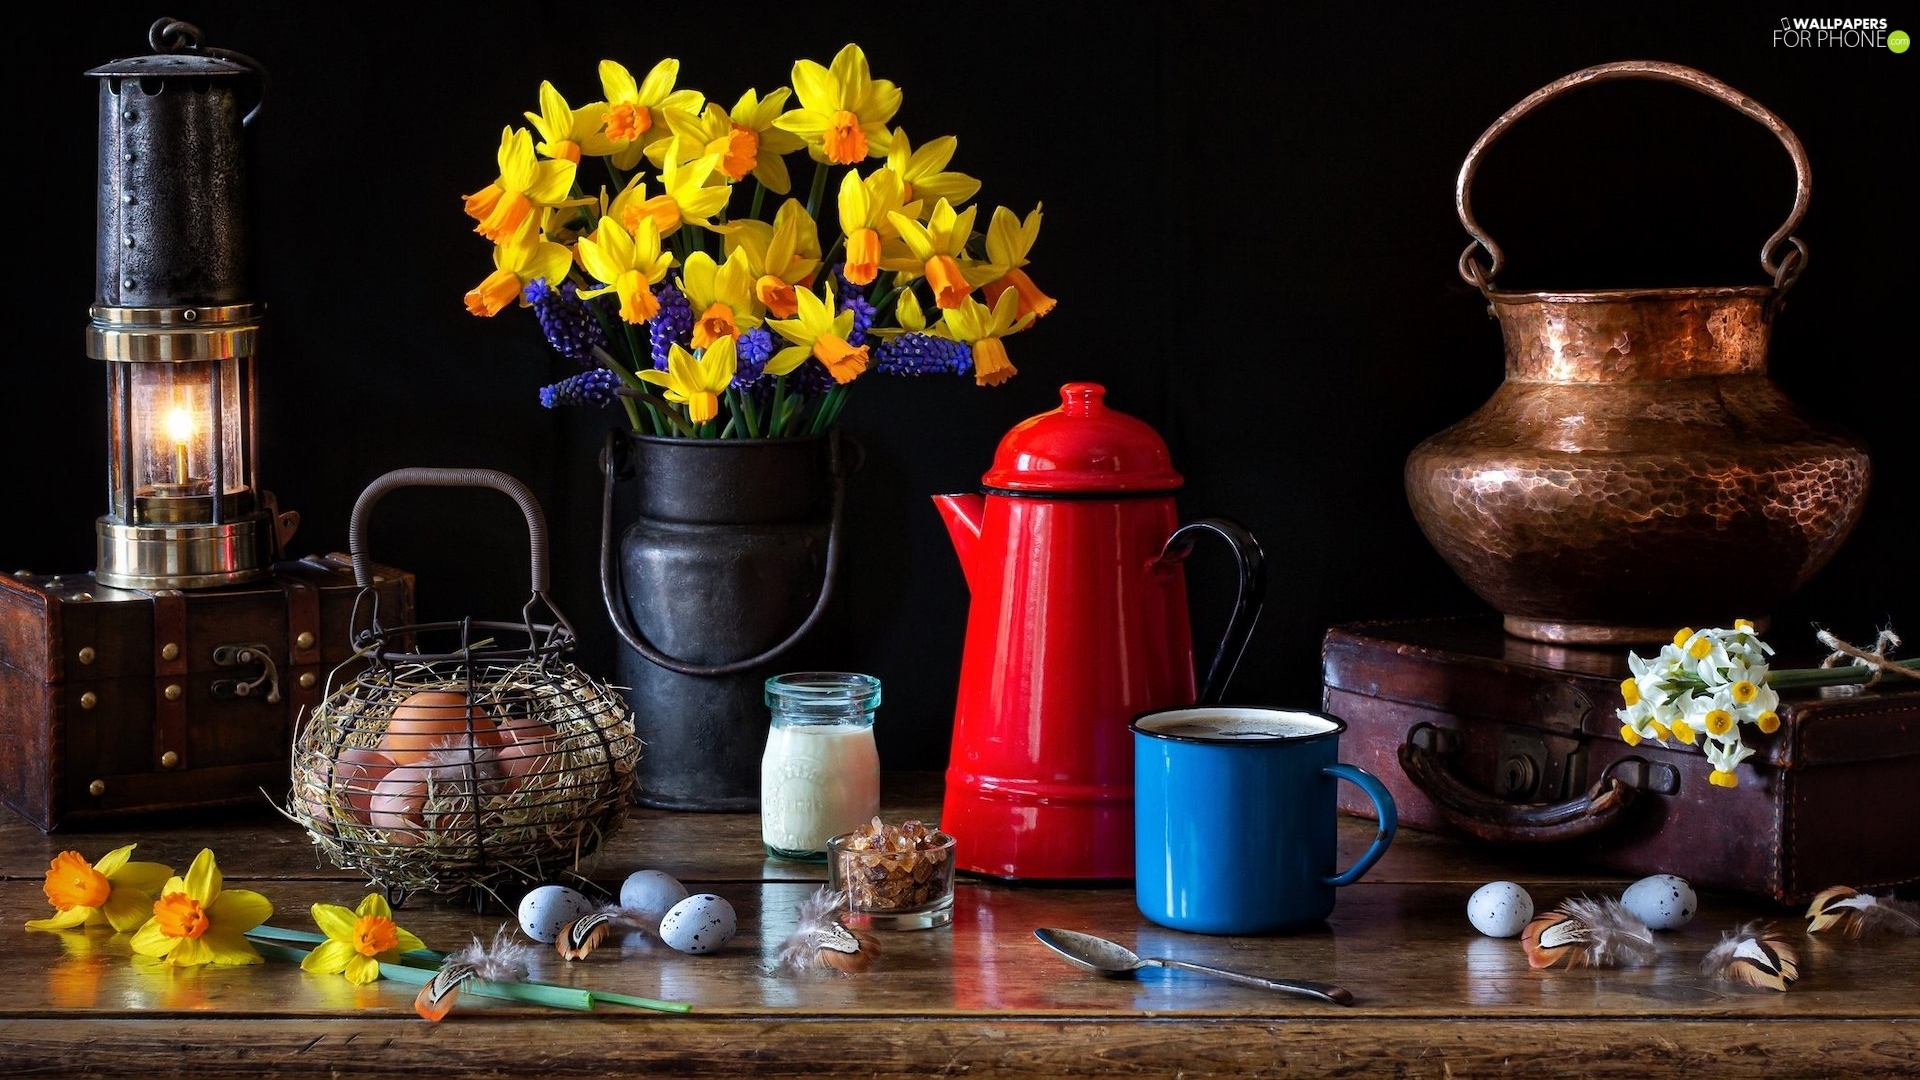 eggs, Daffodils, Cup, Lamp, composition, jug, pot